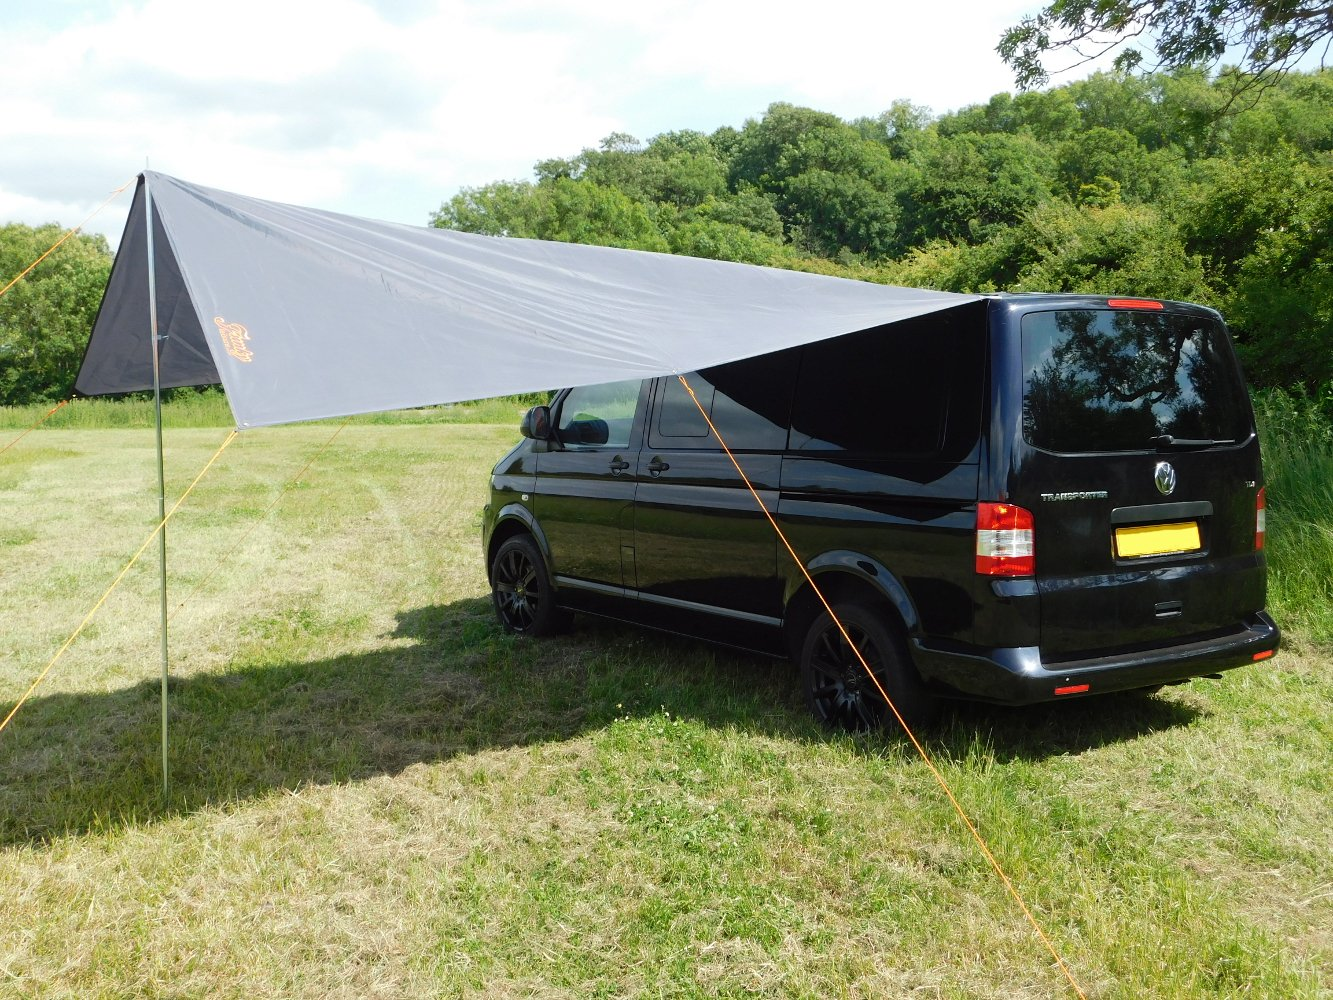 DEBUS Campervan Sun Canopy Awning - Anthracite Grey 5